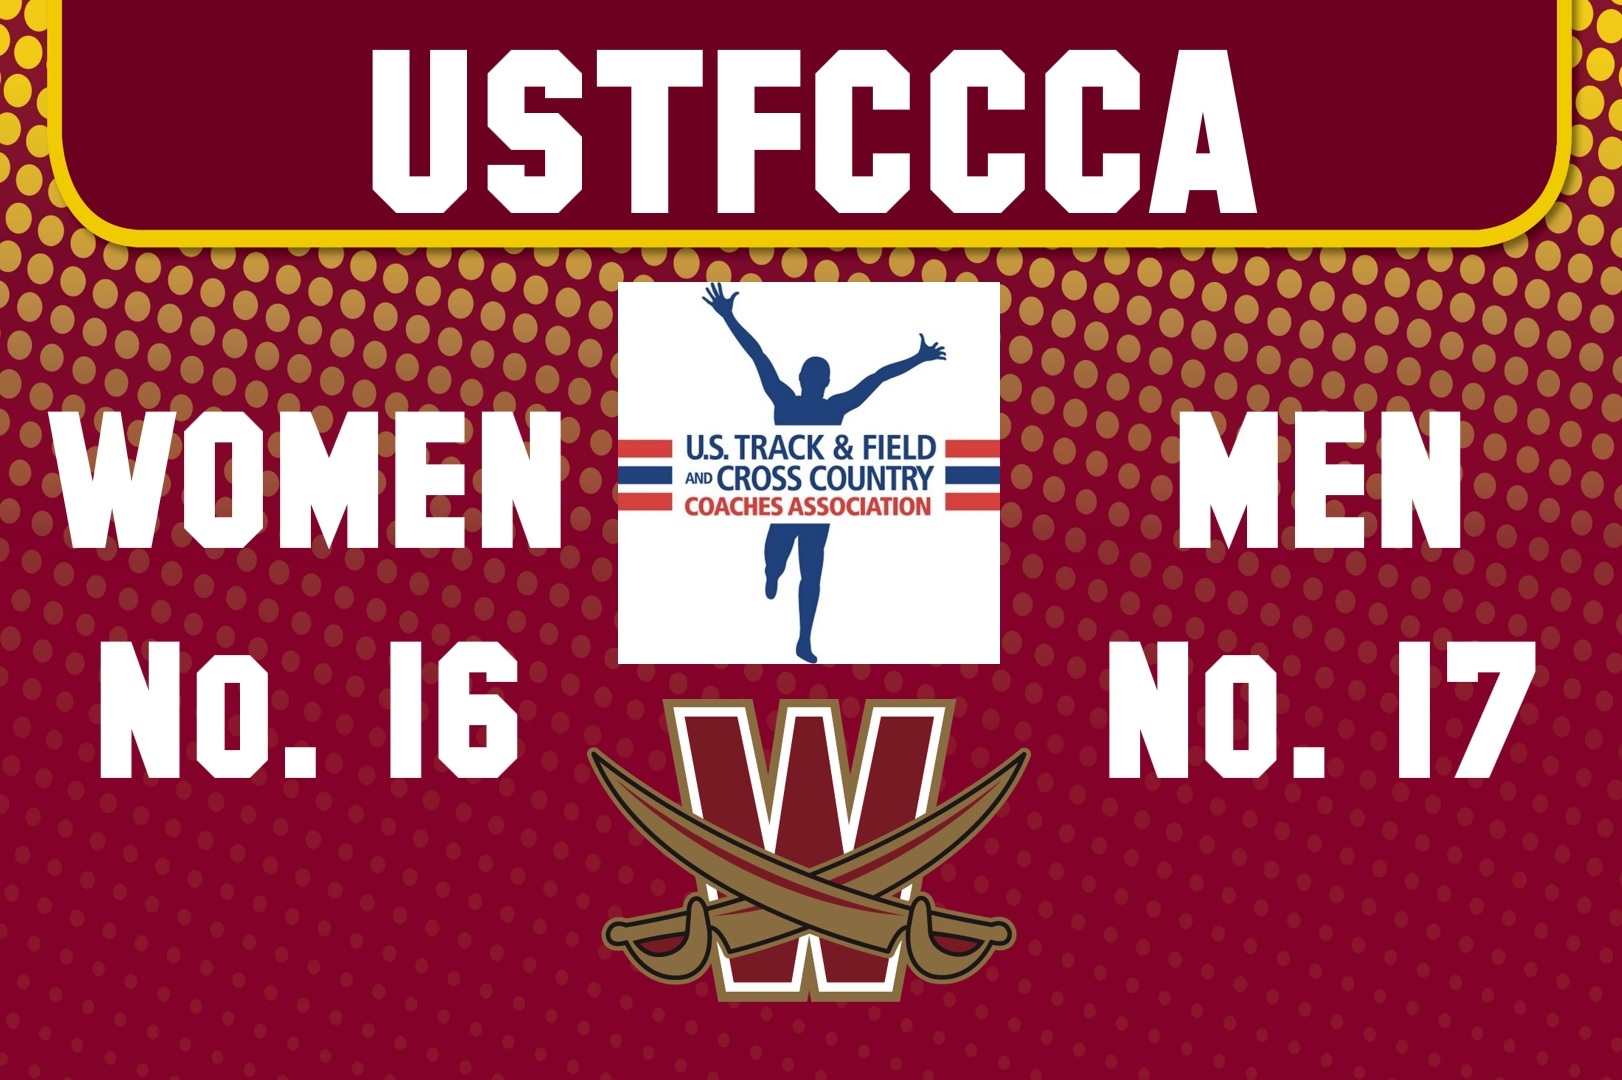 Men's XC Up to No. 17, Women Now No. 16 Nationally